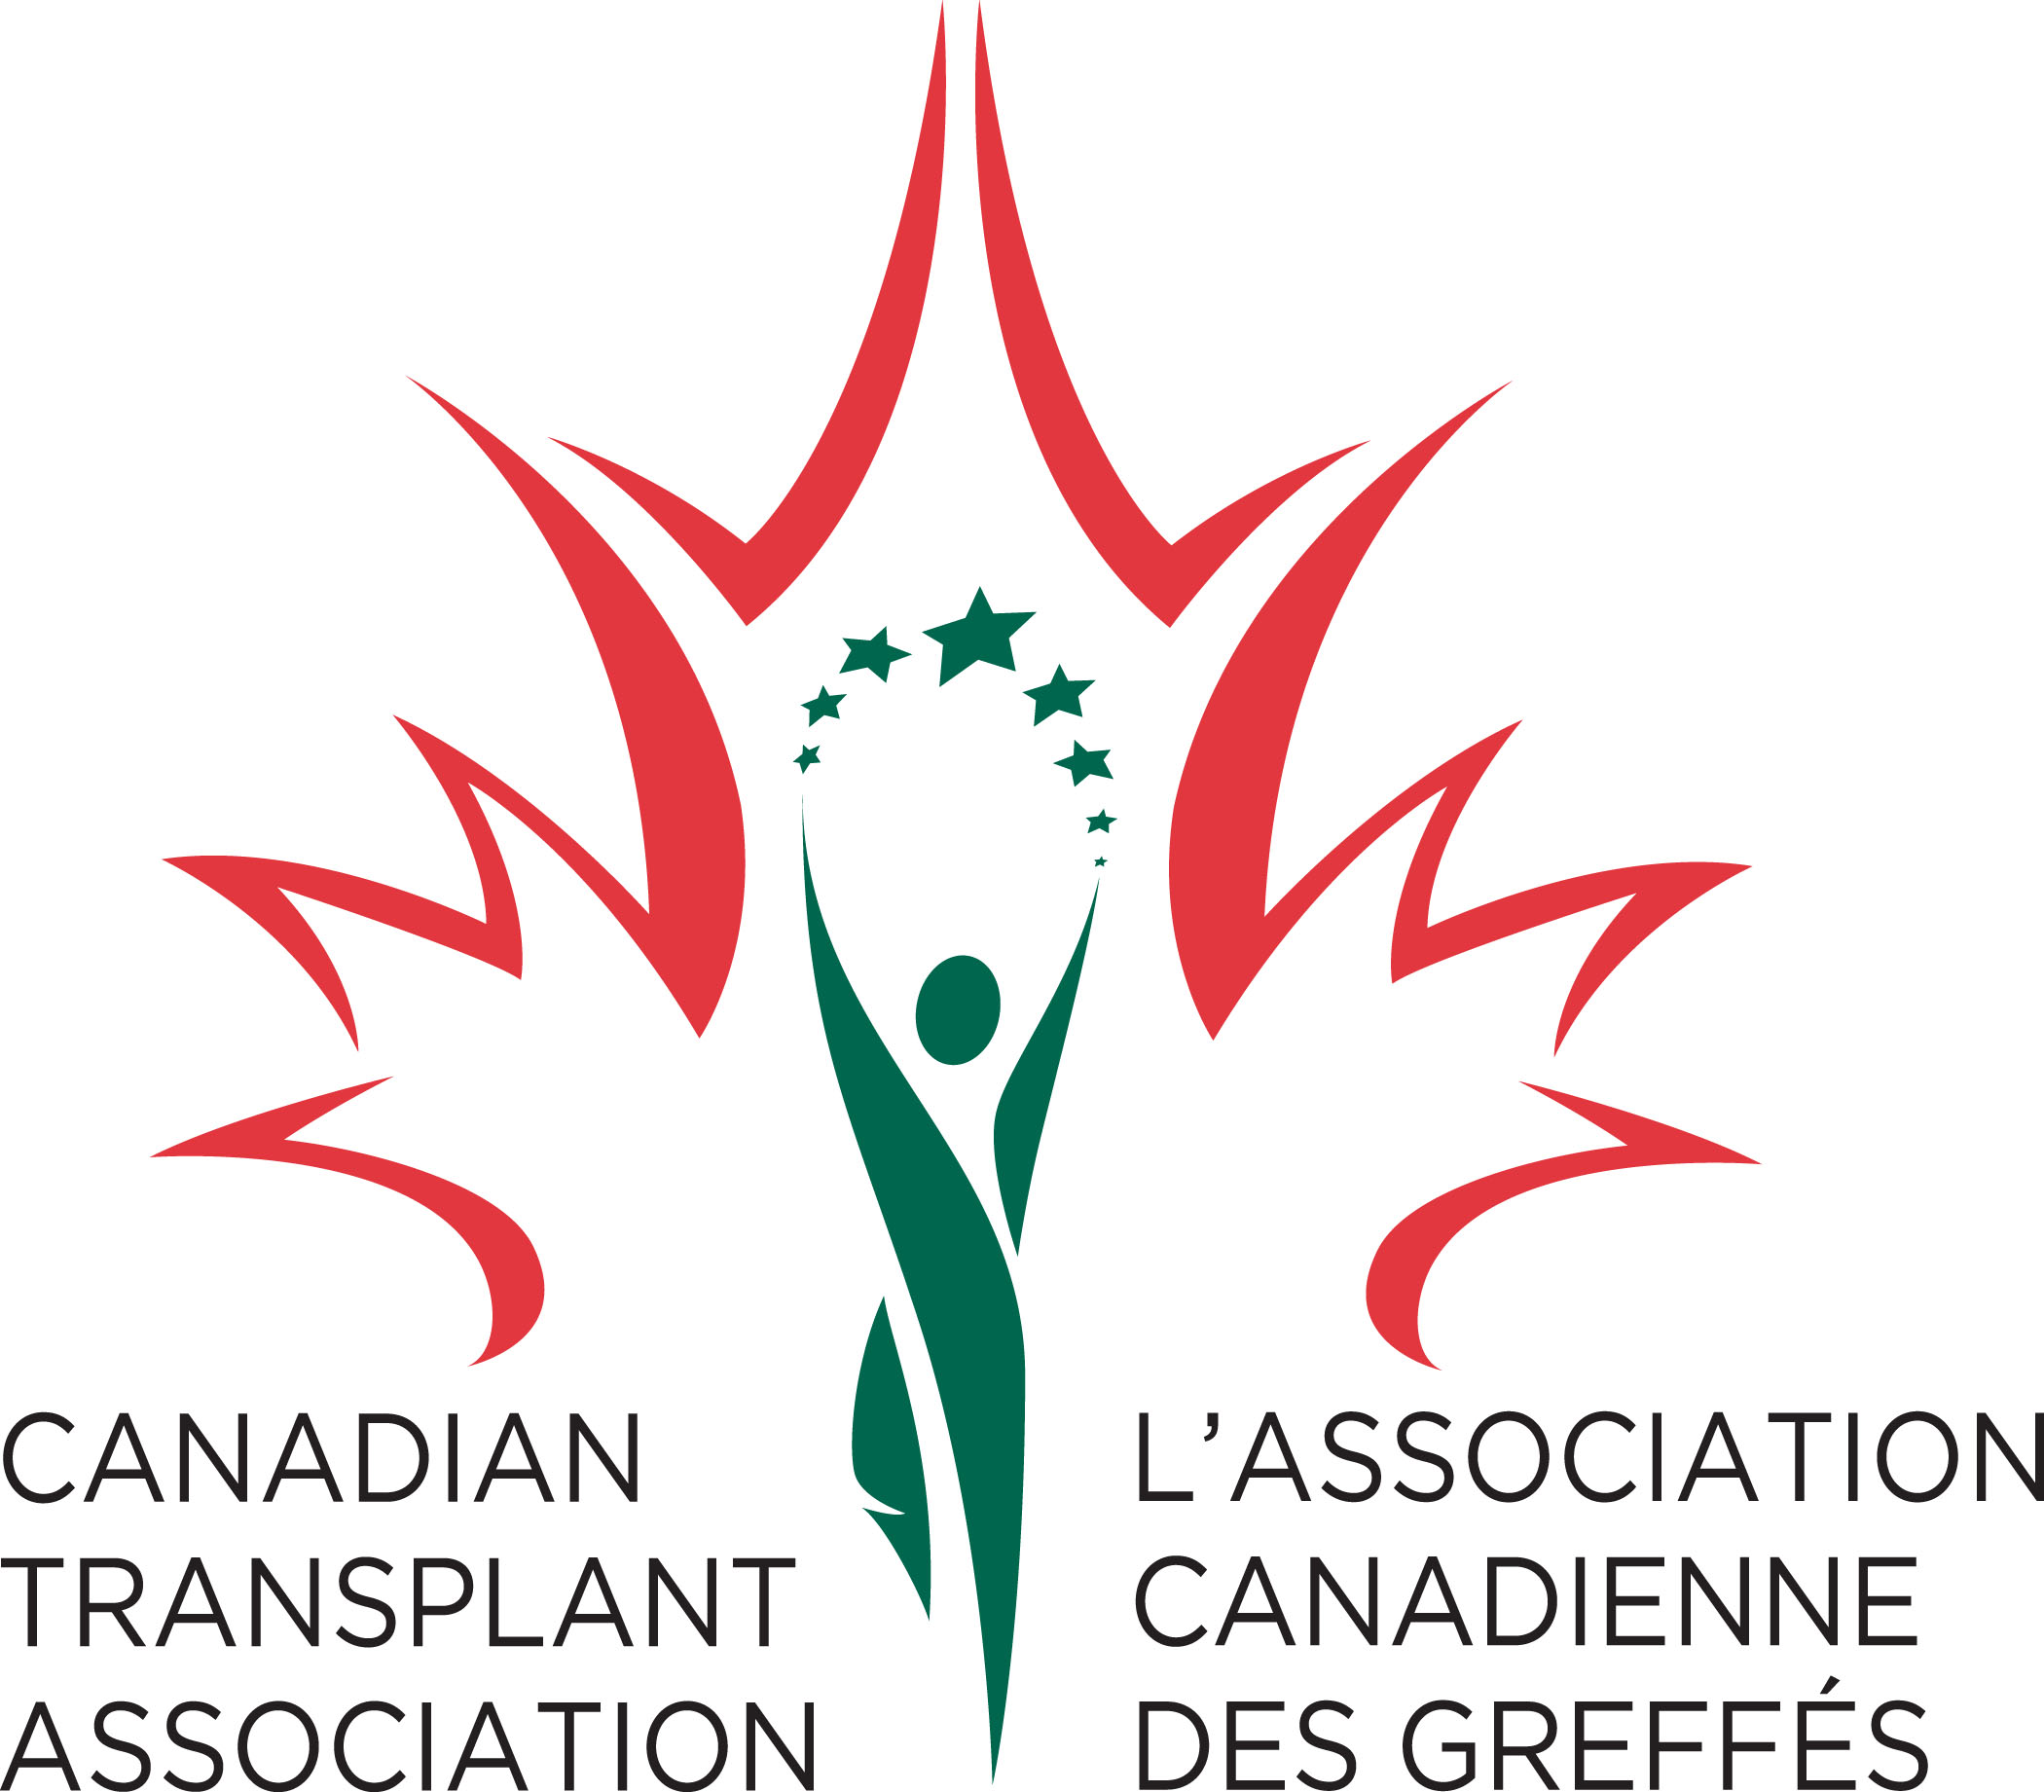 Second annual Canadian Transplant Association Green Shirt Day in honour of Humboldt Broncos defenseman Logan Boulet encourages organ donation registration